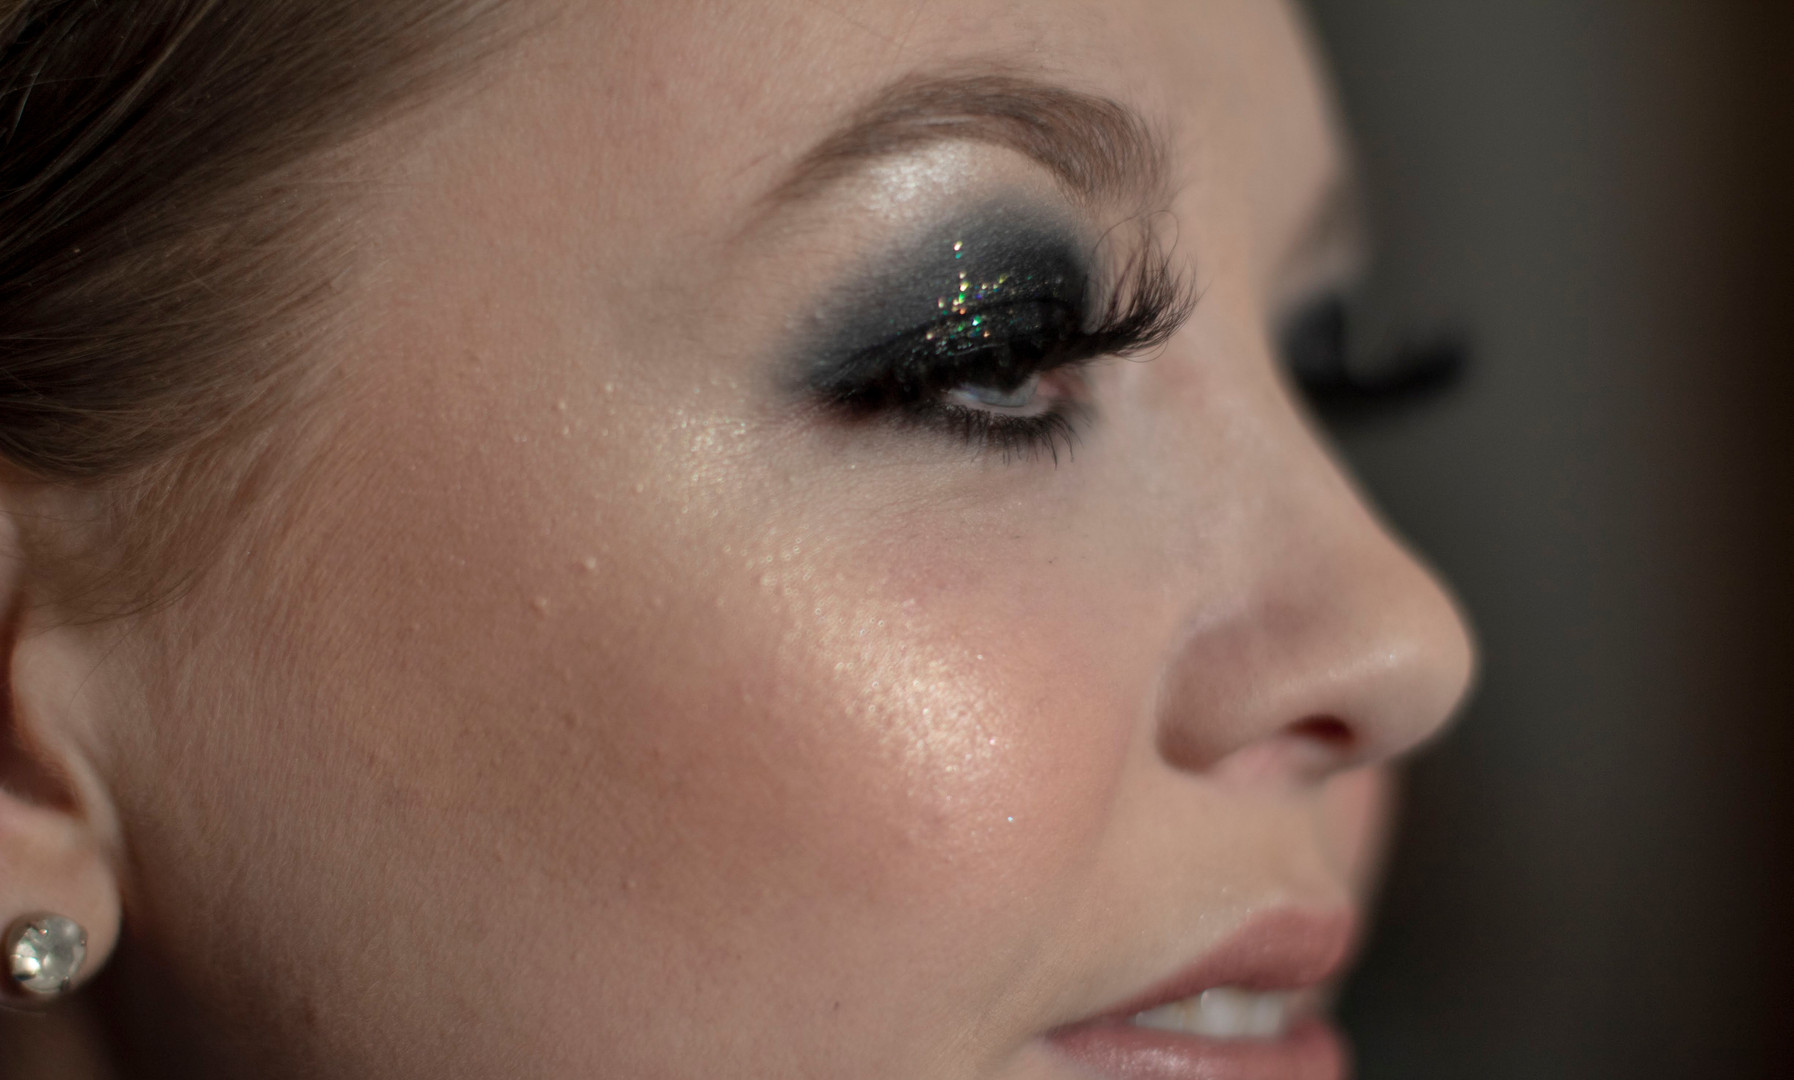 Black smokey eye with glitter party makeup